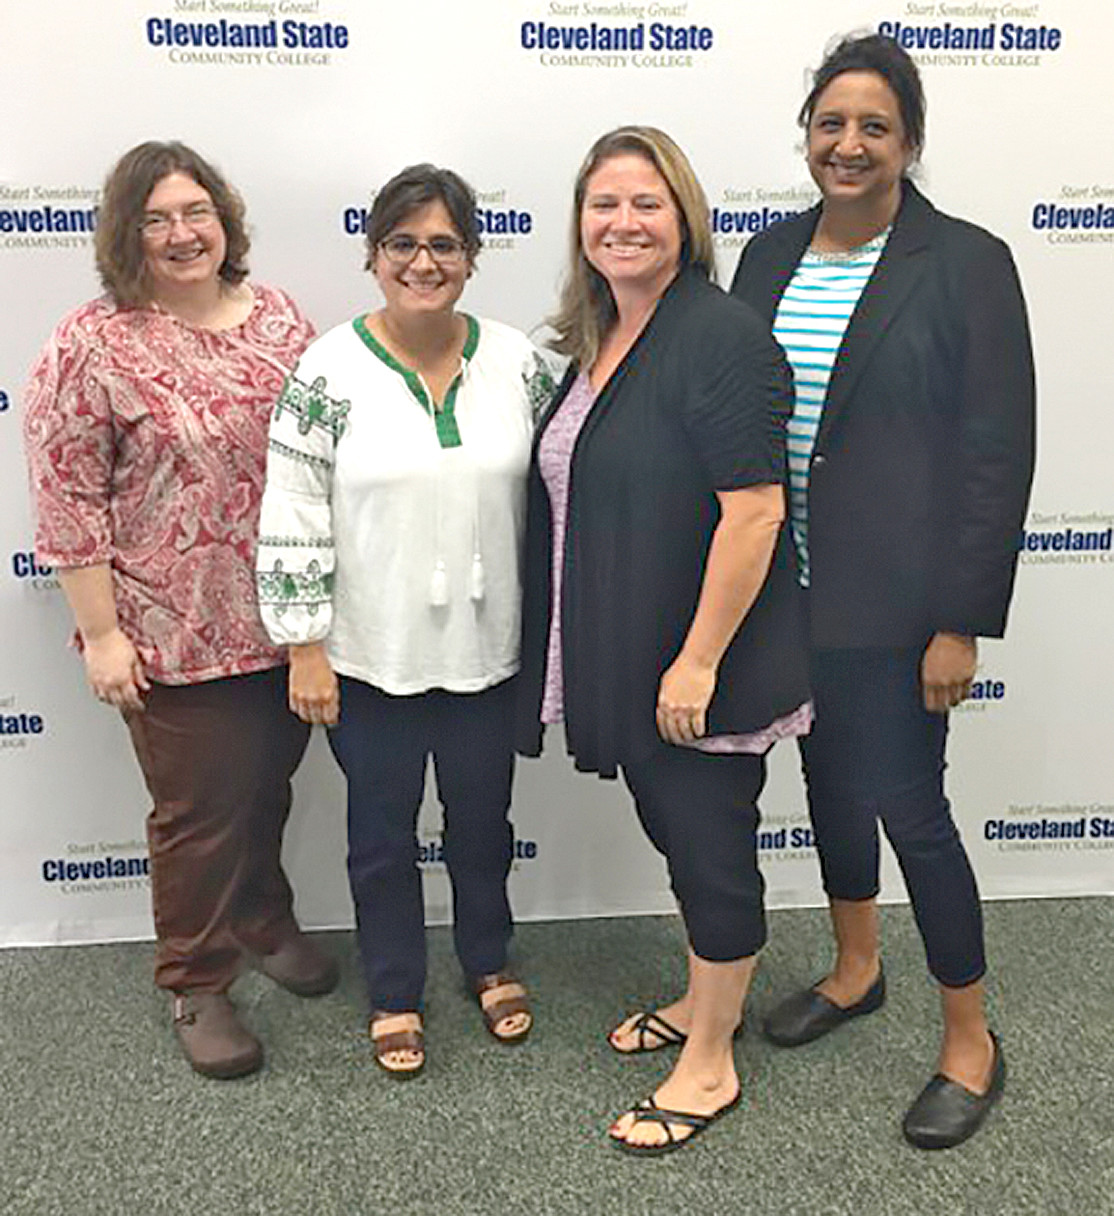 Four CSCC employees were recommended and approved to receive tenure from the Tennessee Board of Regents. From left are Jenny Eble, Rebecca Riggs, Candace Patterson and Maureen Baksh-Griffin.